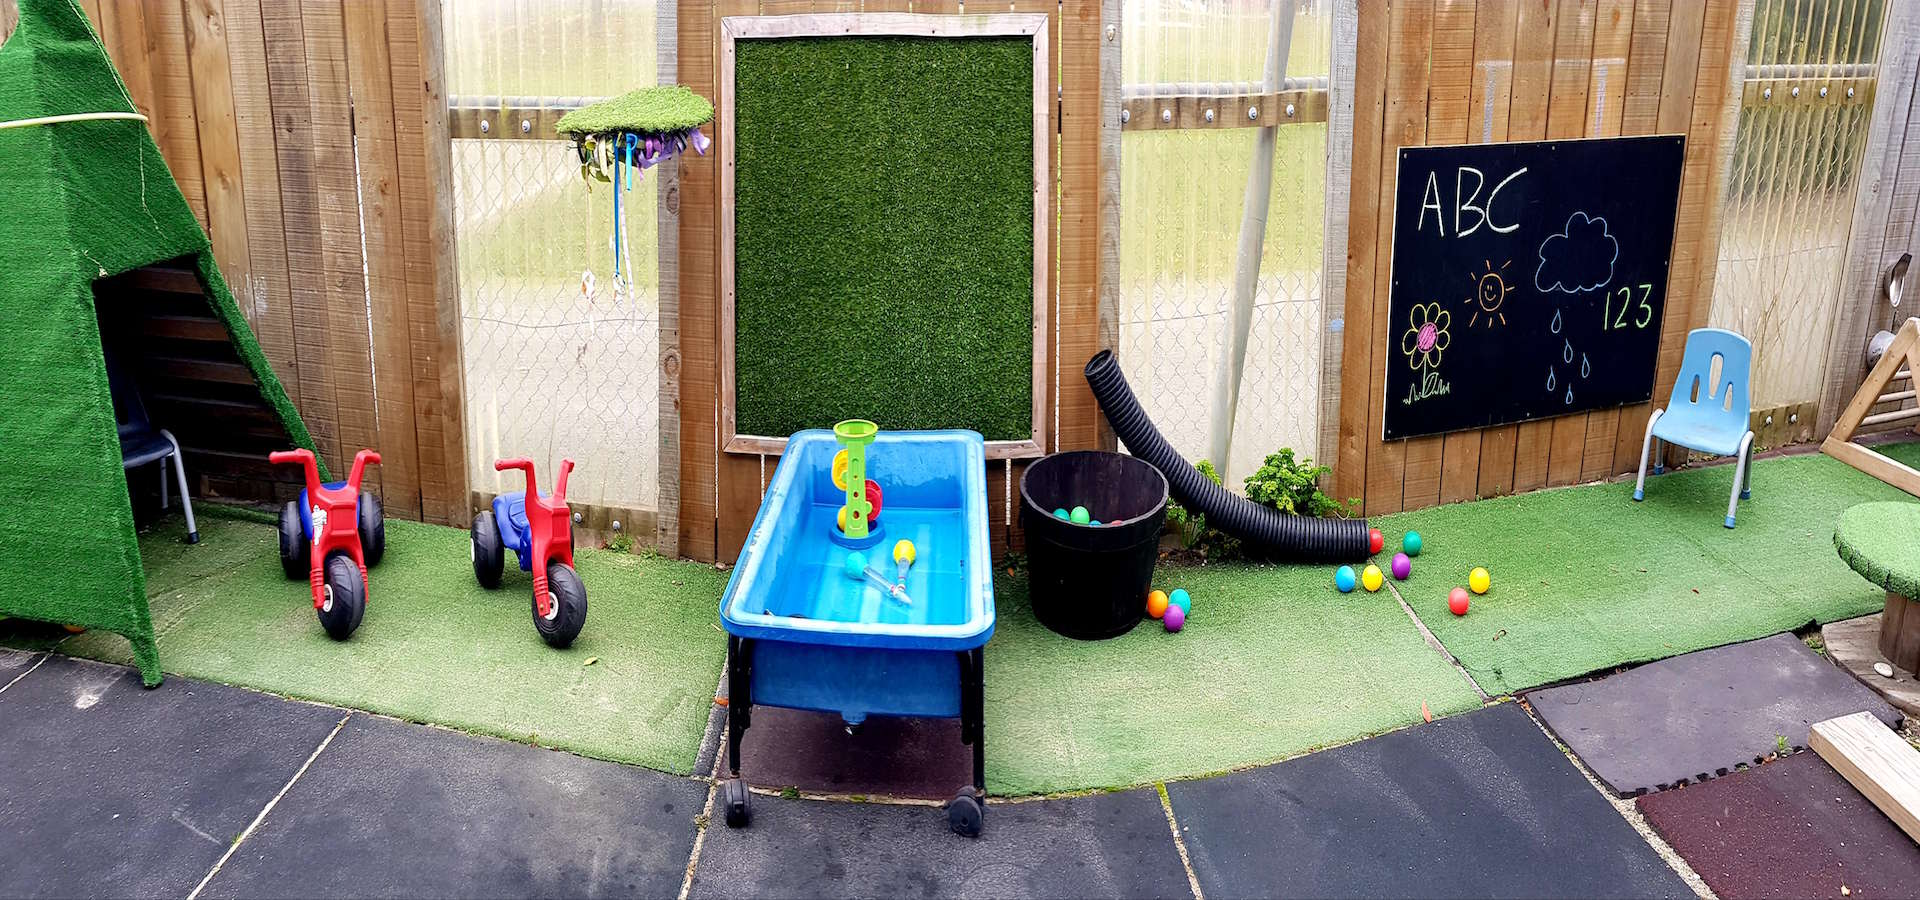 Aynsley Street Preschool - Childcare service in Timaru, New Zealand